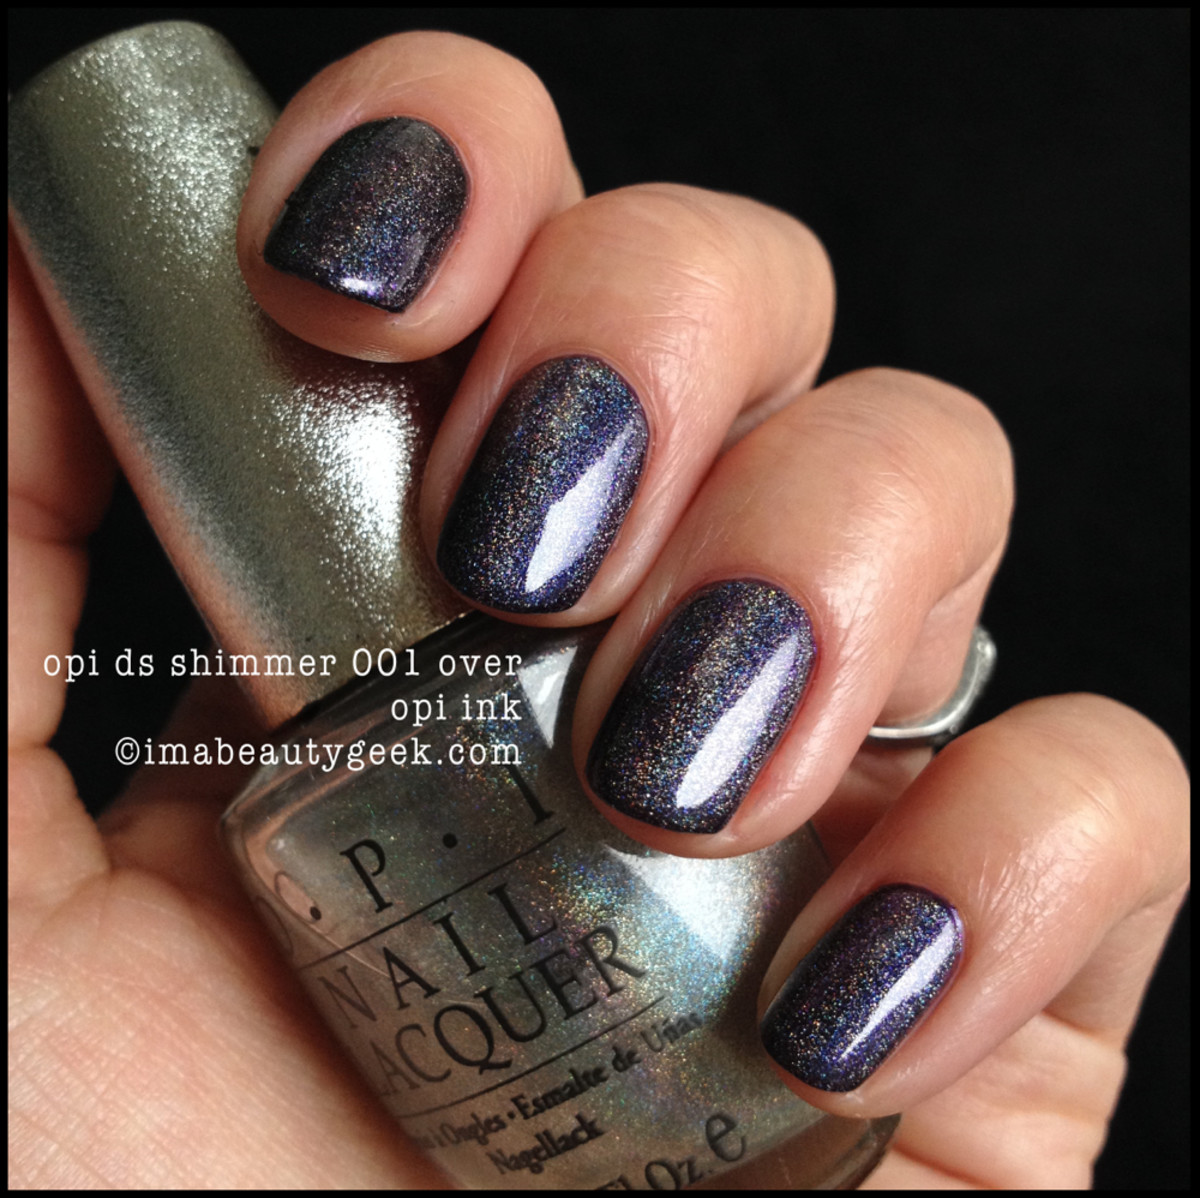 OPI Shimmer over OPI Ink